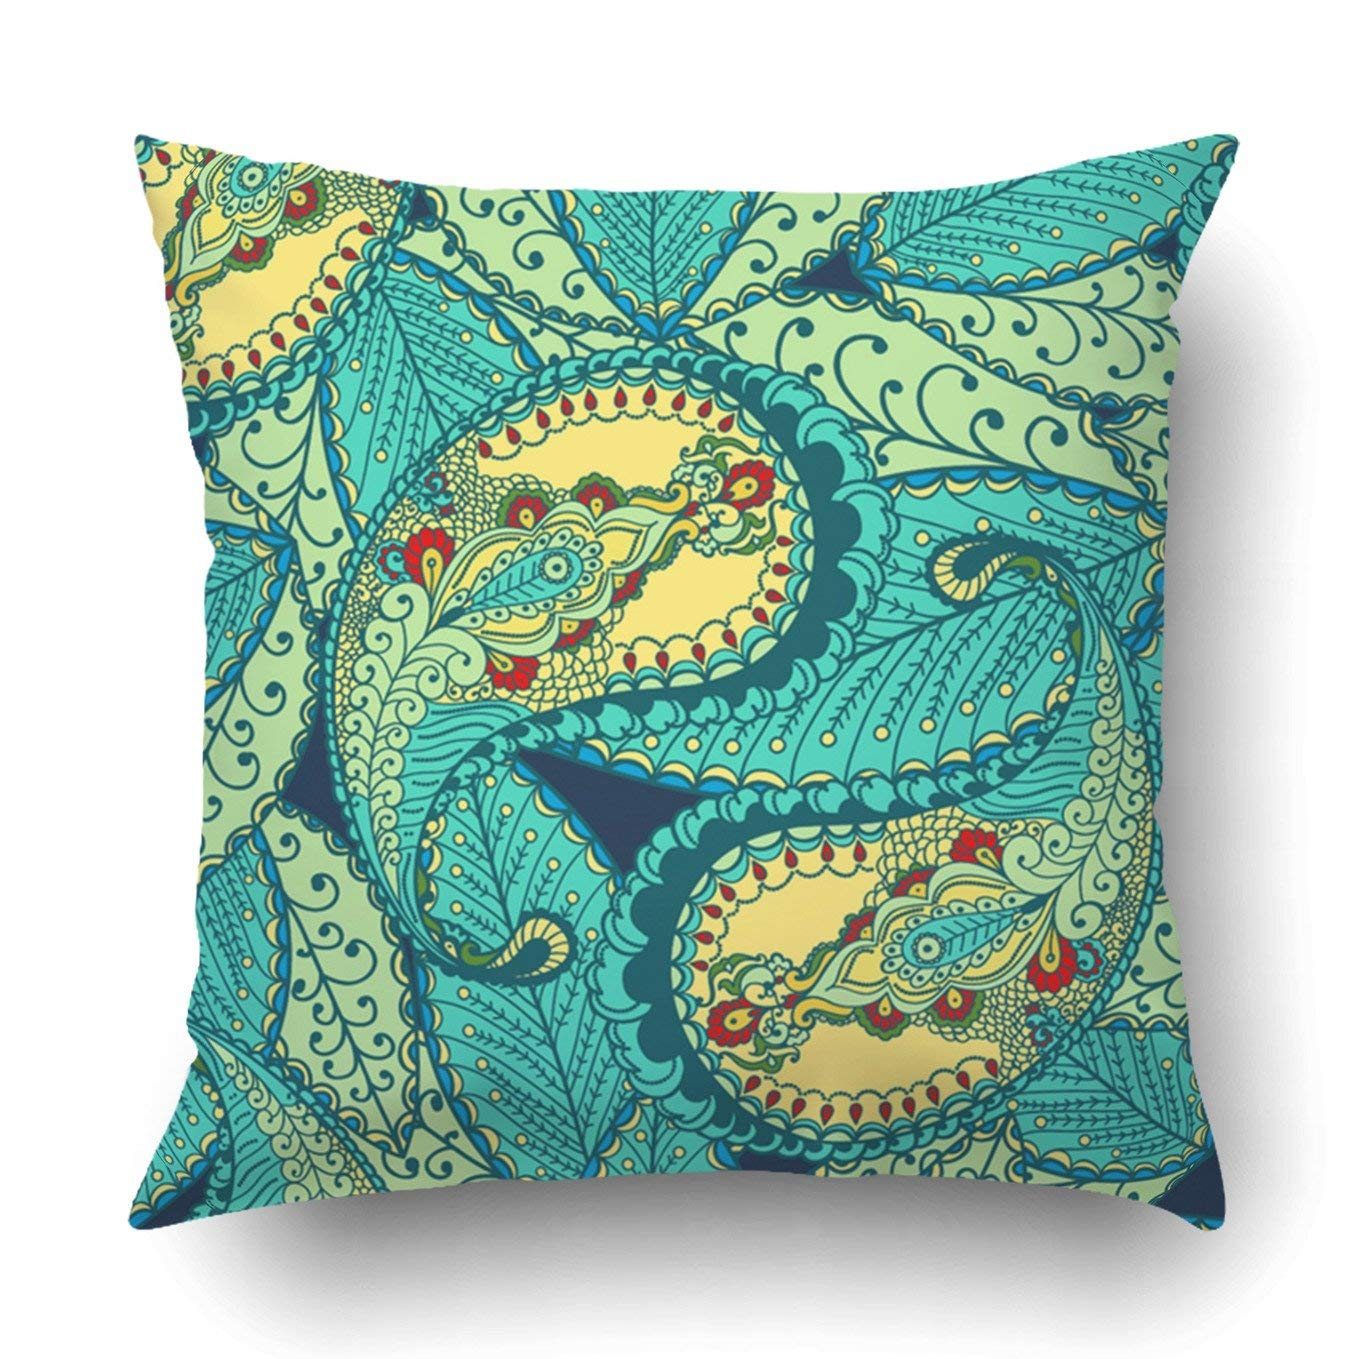 WOPOP colored paisley floral elements on green bohemian Pillowcase Throw Pillow Cover Case 16x16 inches